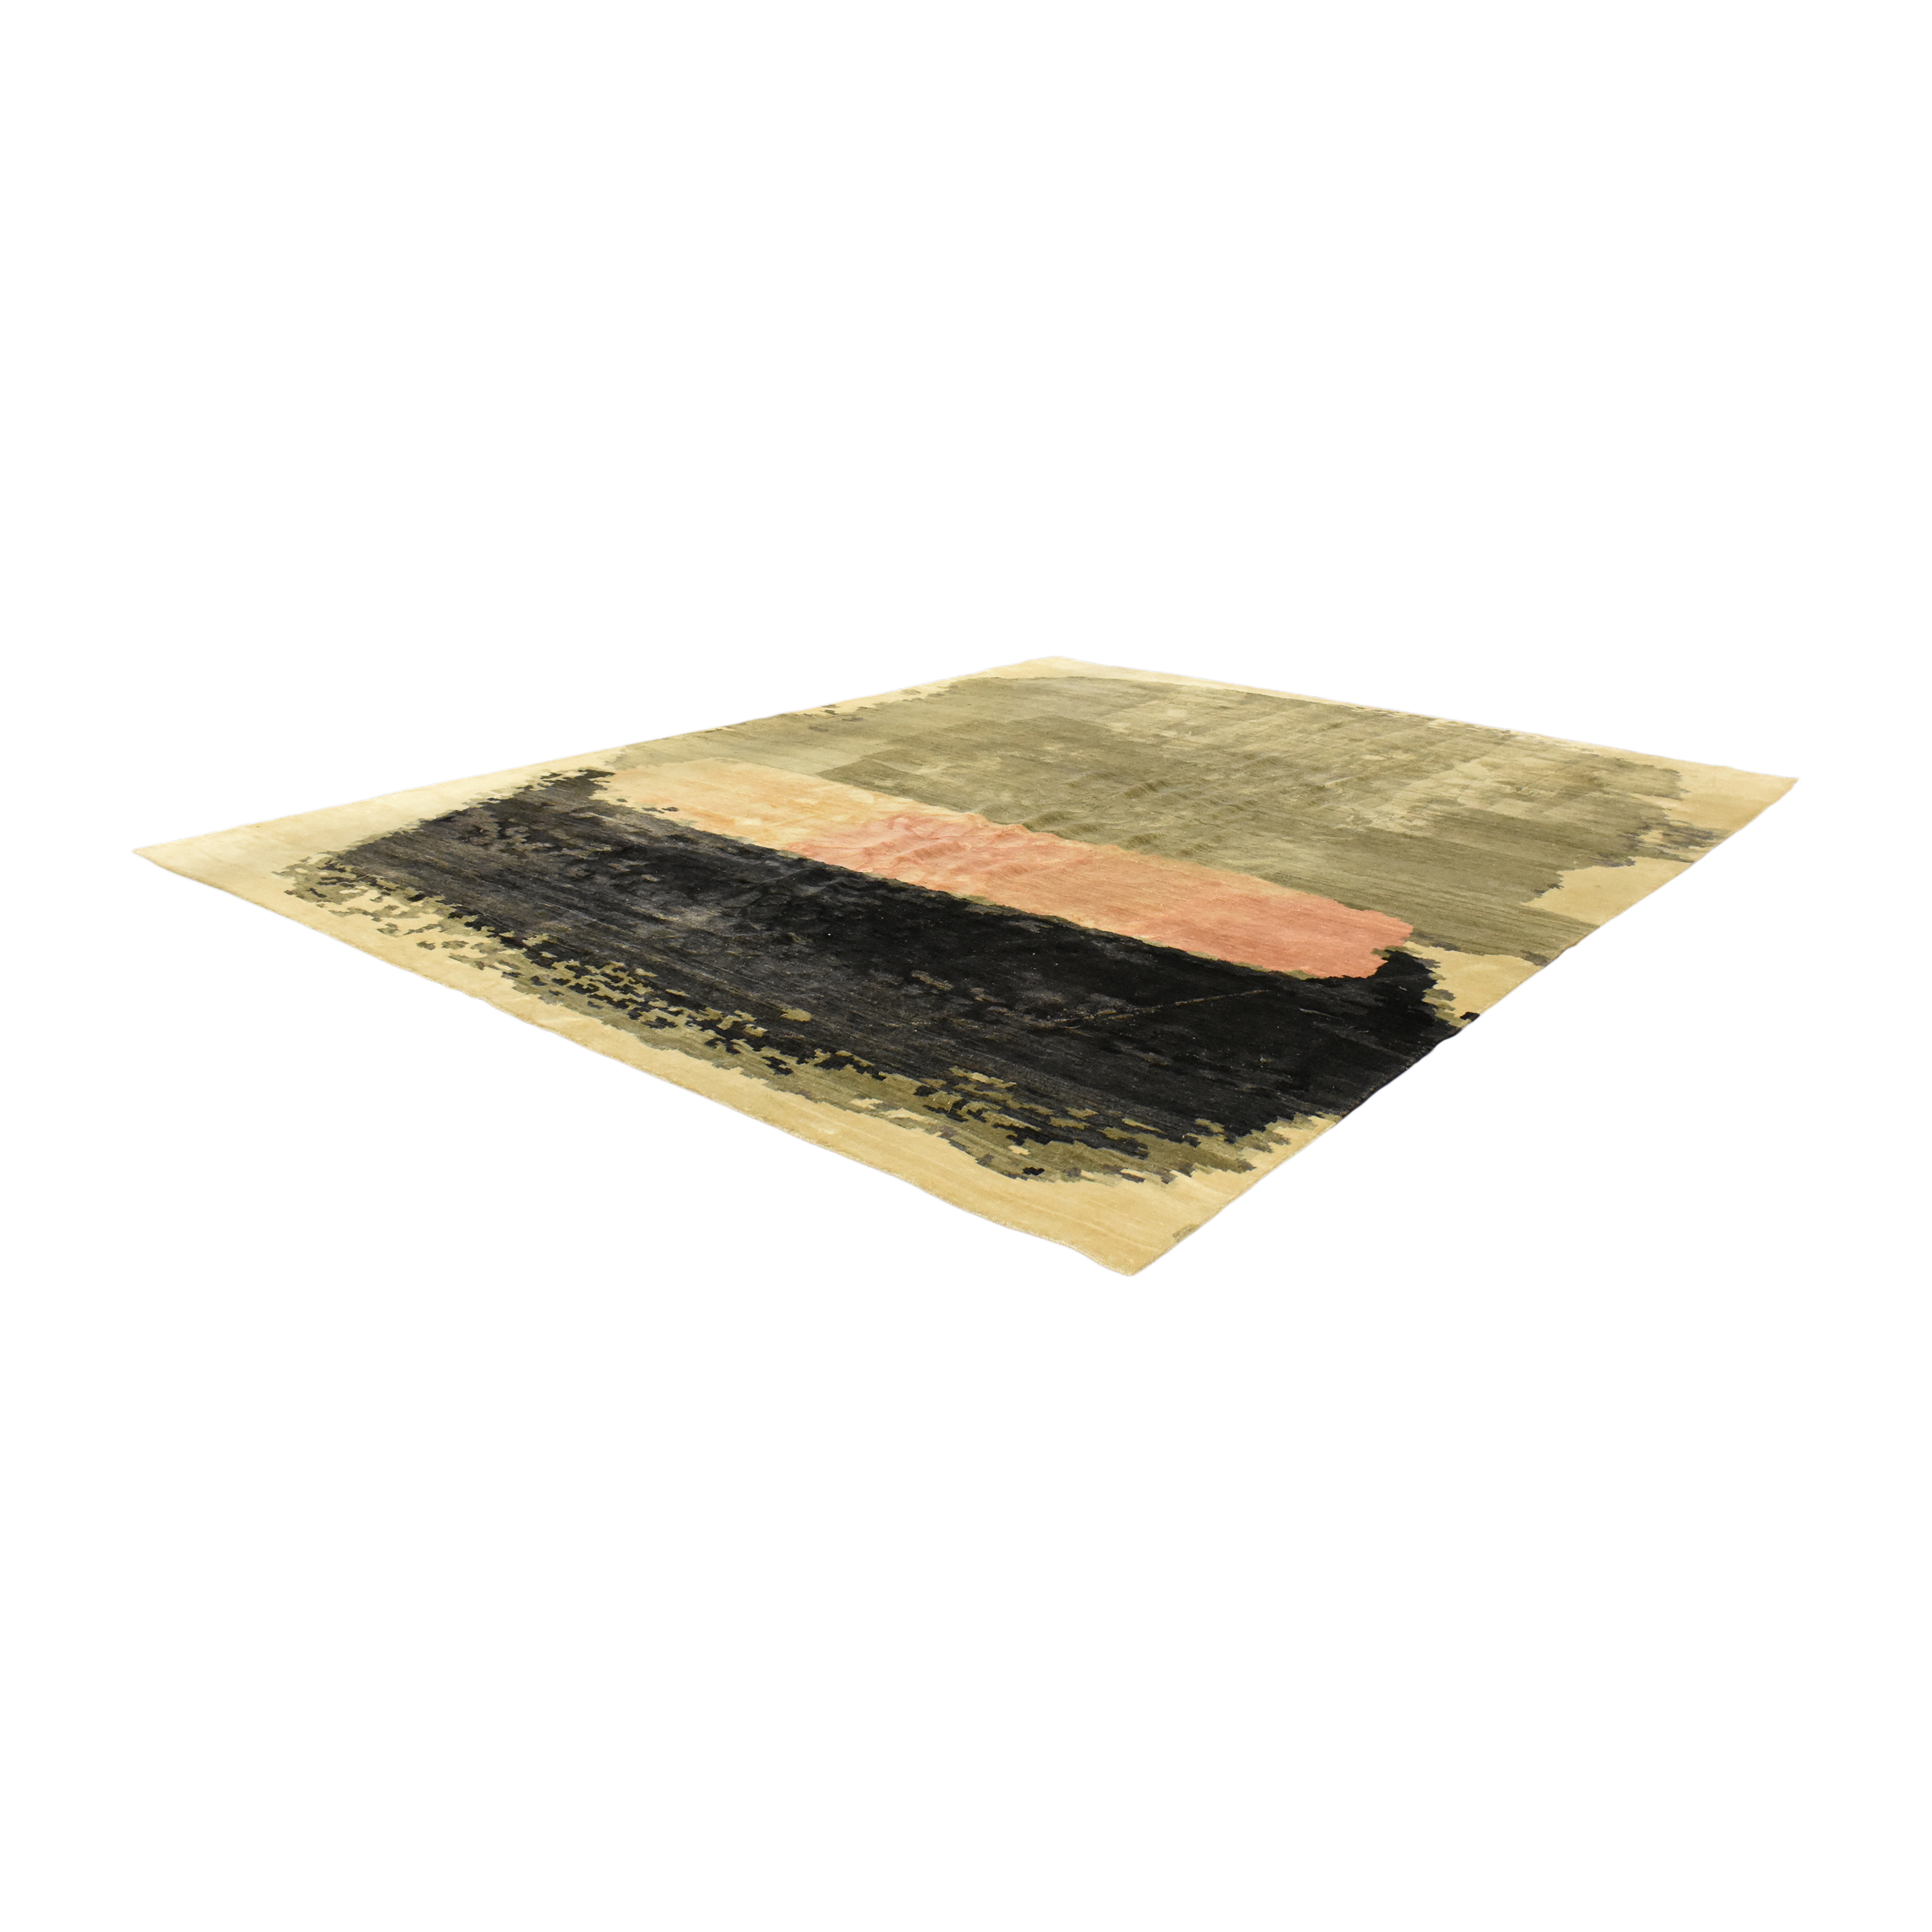 Anthropologie Anthropologie Painted Palette Area Rug dimensions